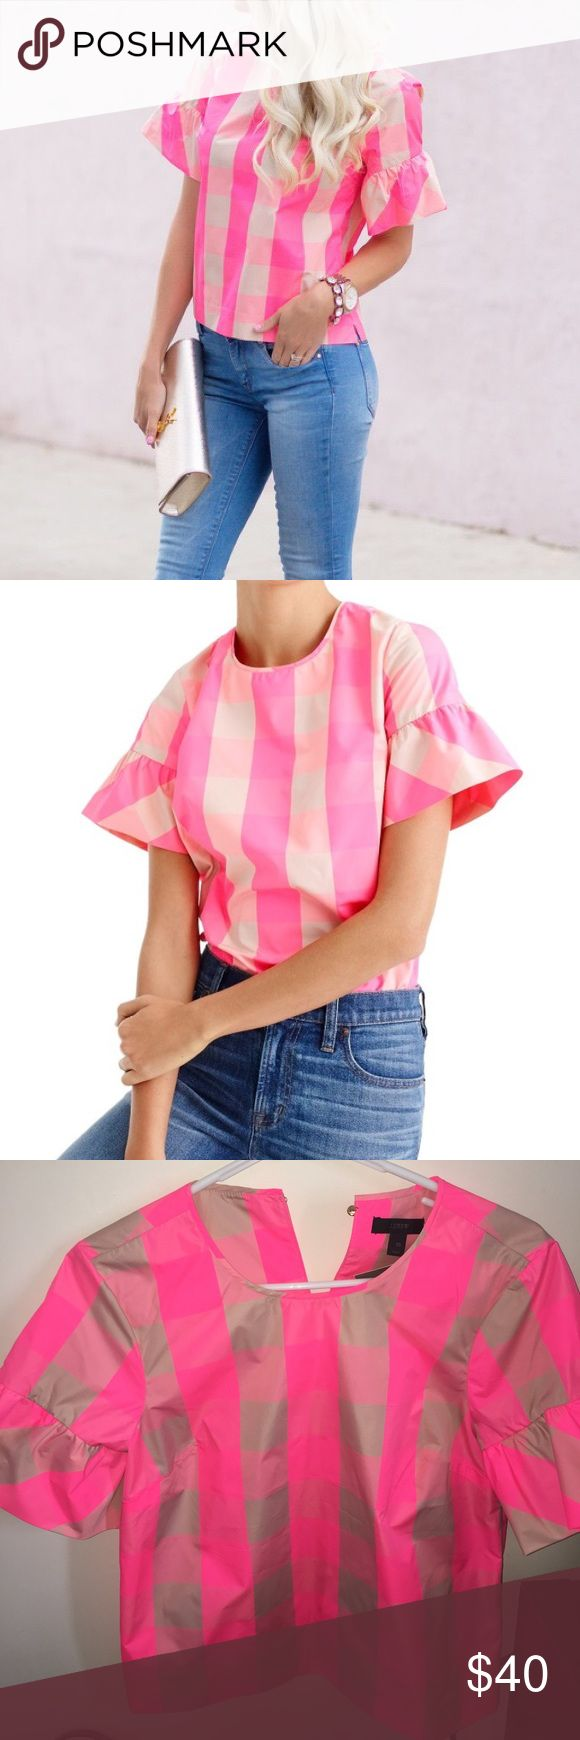 J Crew hot pink blouse NWT J crew light pink blouse! Never been worn. 100% polyester j crew Tops Blouses